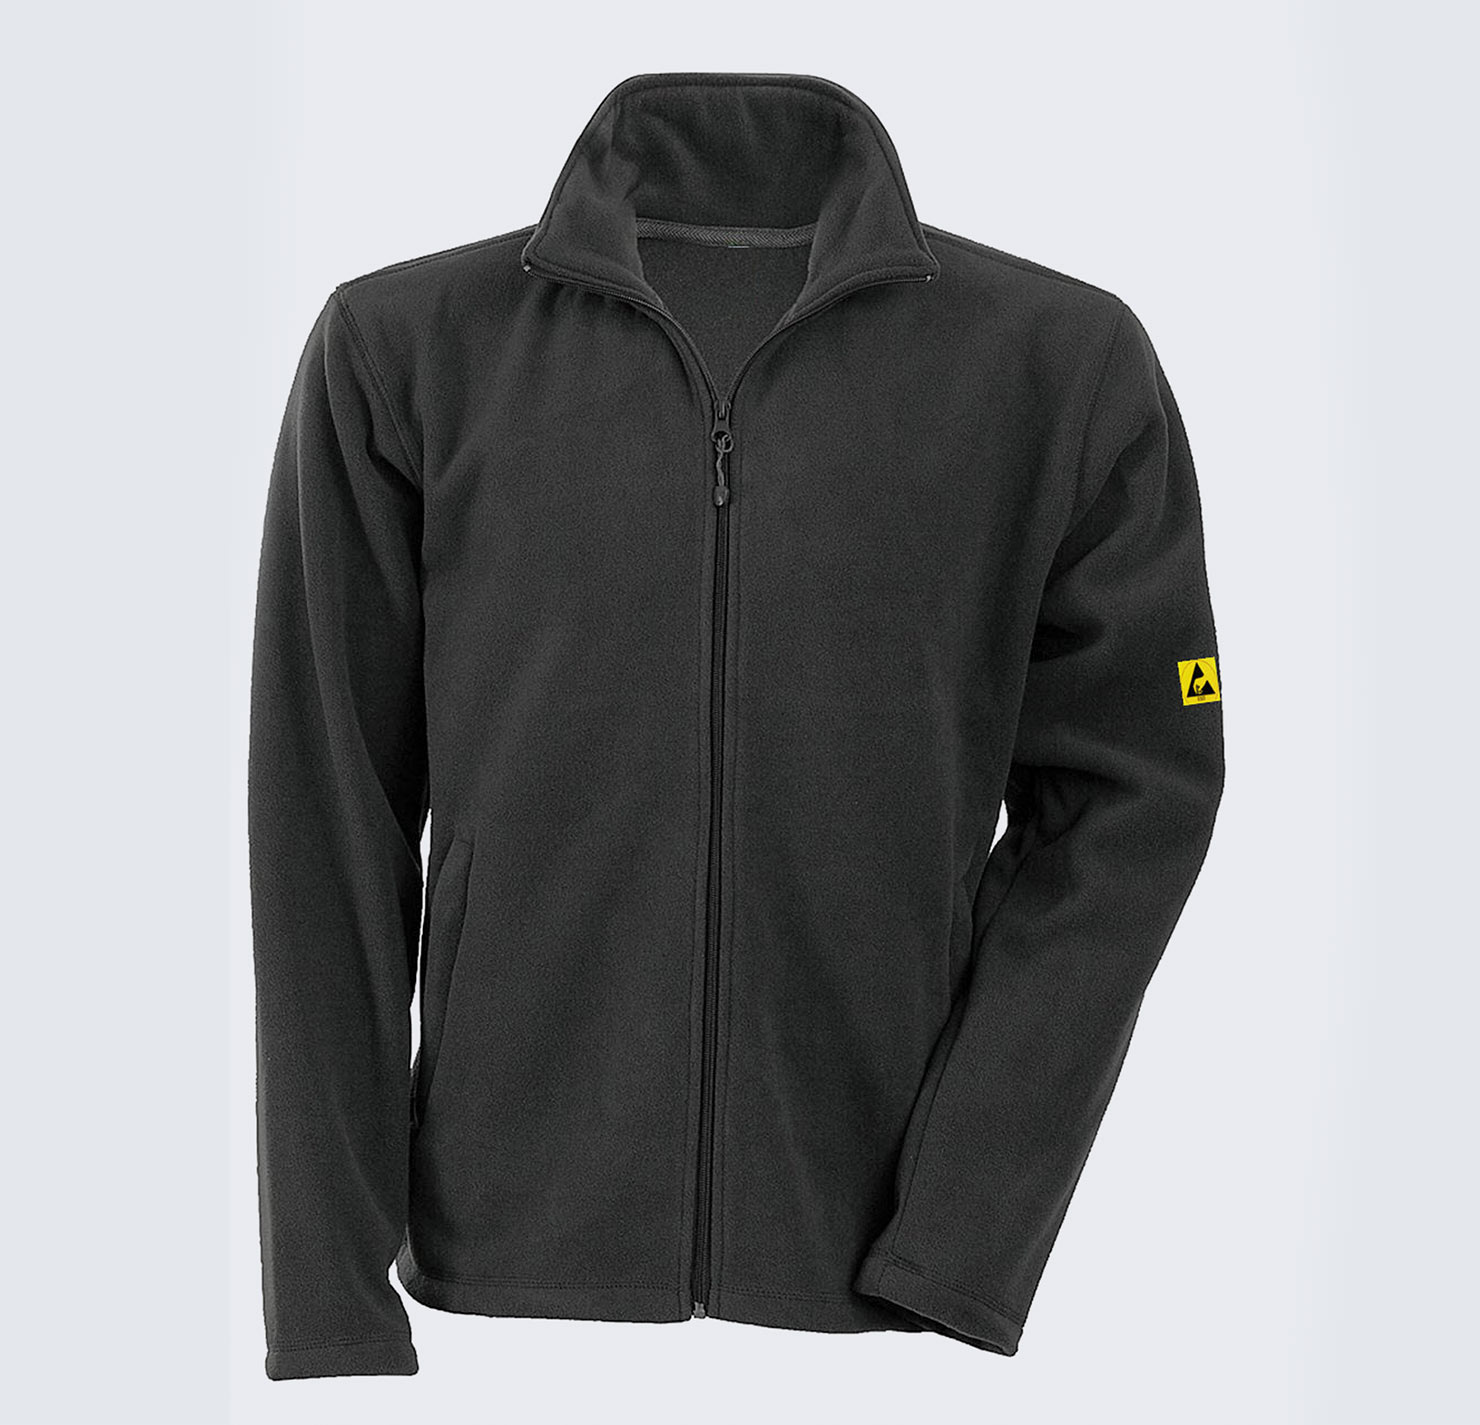 ESD FLEECE JACKET – MESDFL